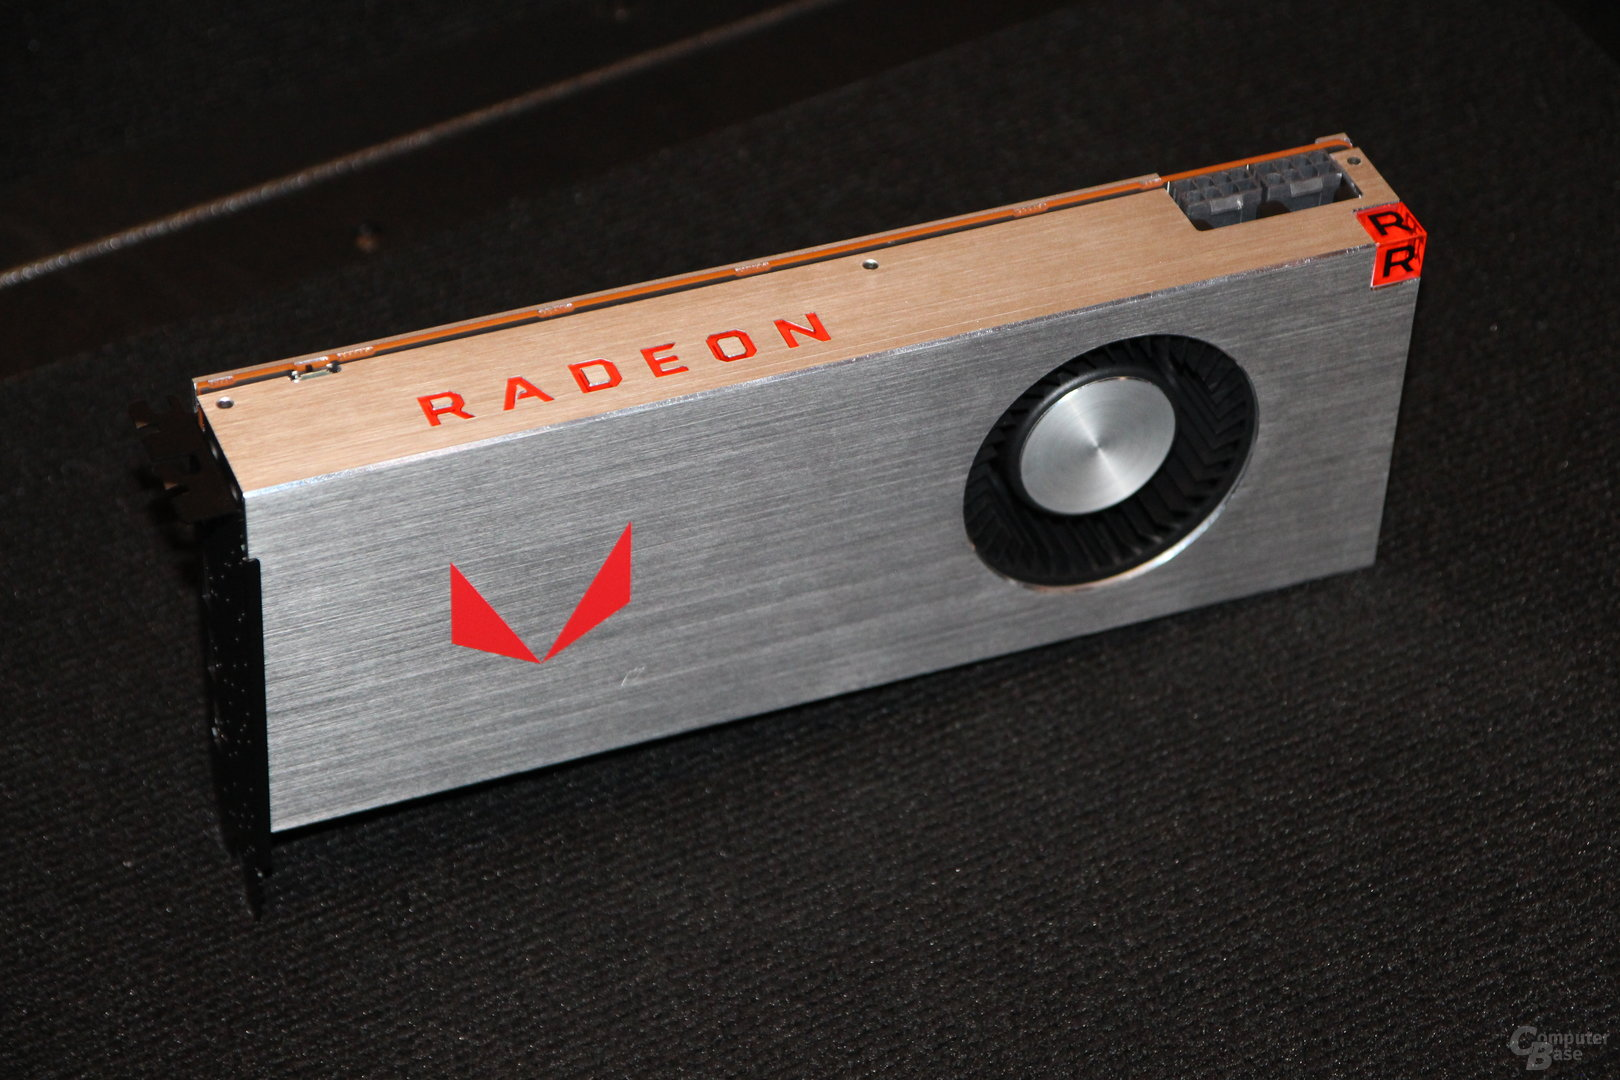 Amd Radeon Rx Vega 64 Limited Edition And Liquid Edition Launch Gallery Videocardz Com